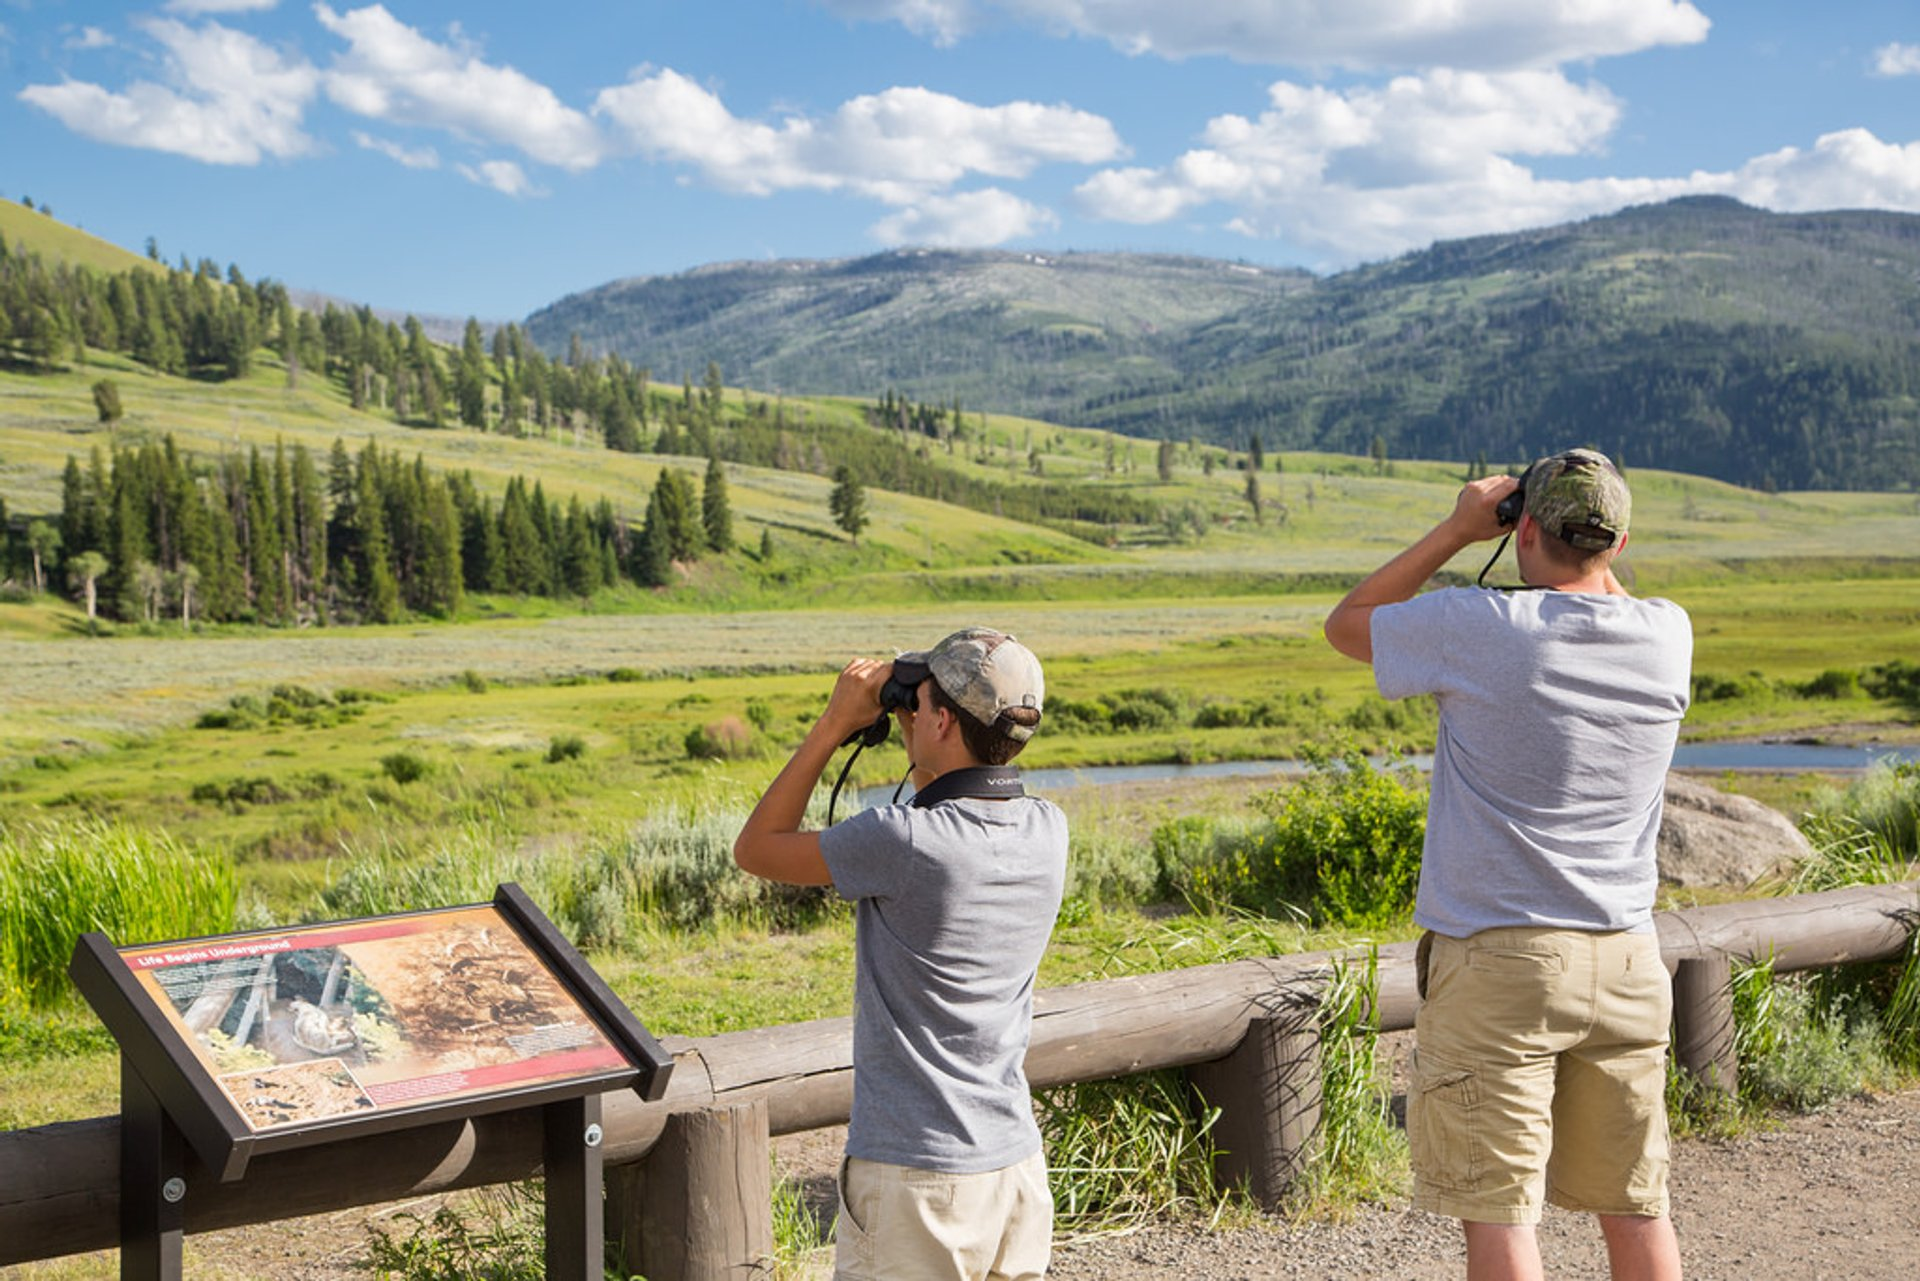 Watching for wildlife, Lamar Valley 2019